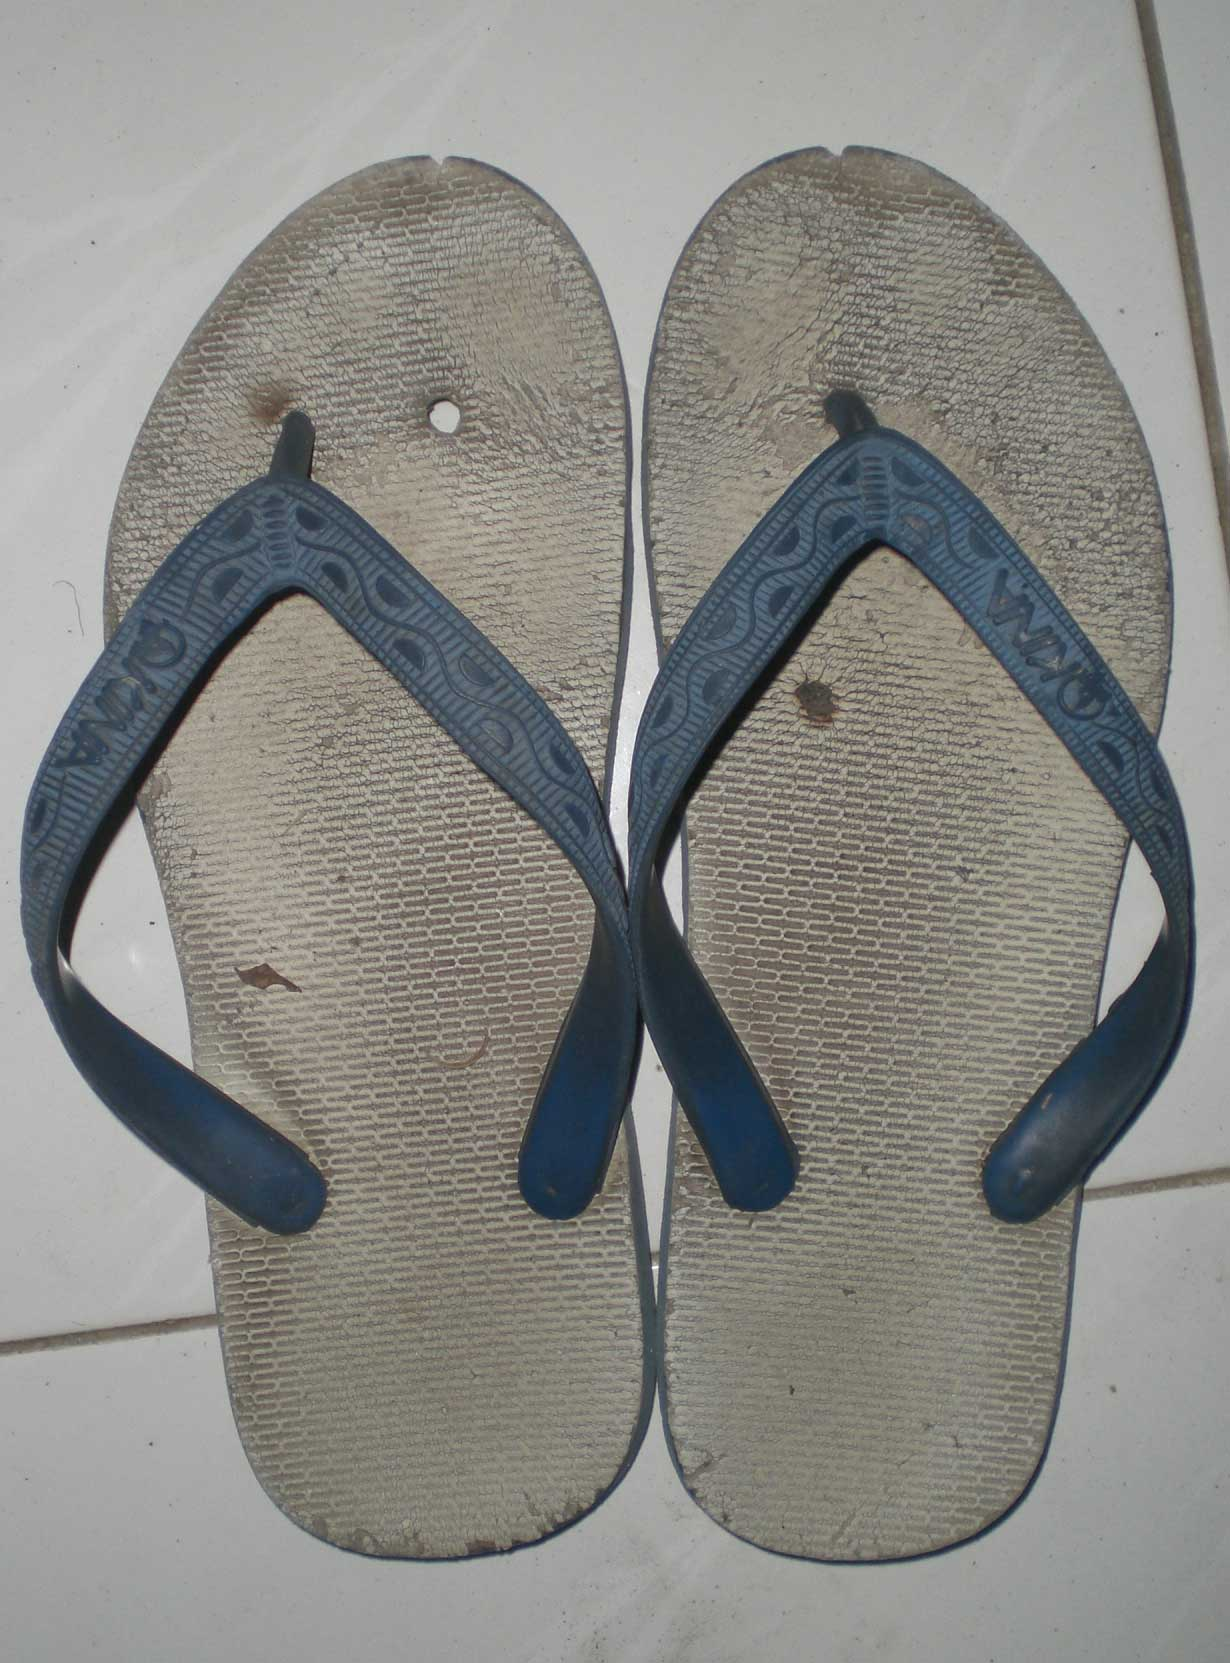 http://sumpek.files.wordpress.com/2008/08/sandal-jepit.jpg